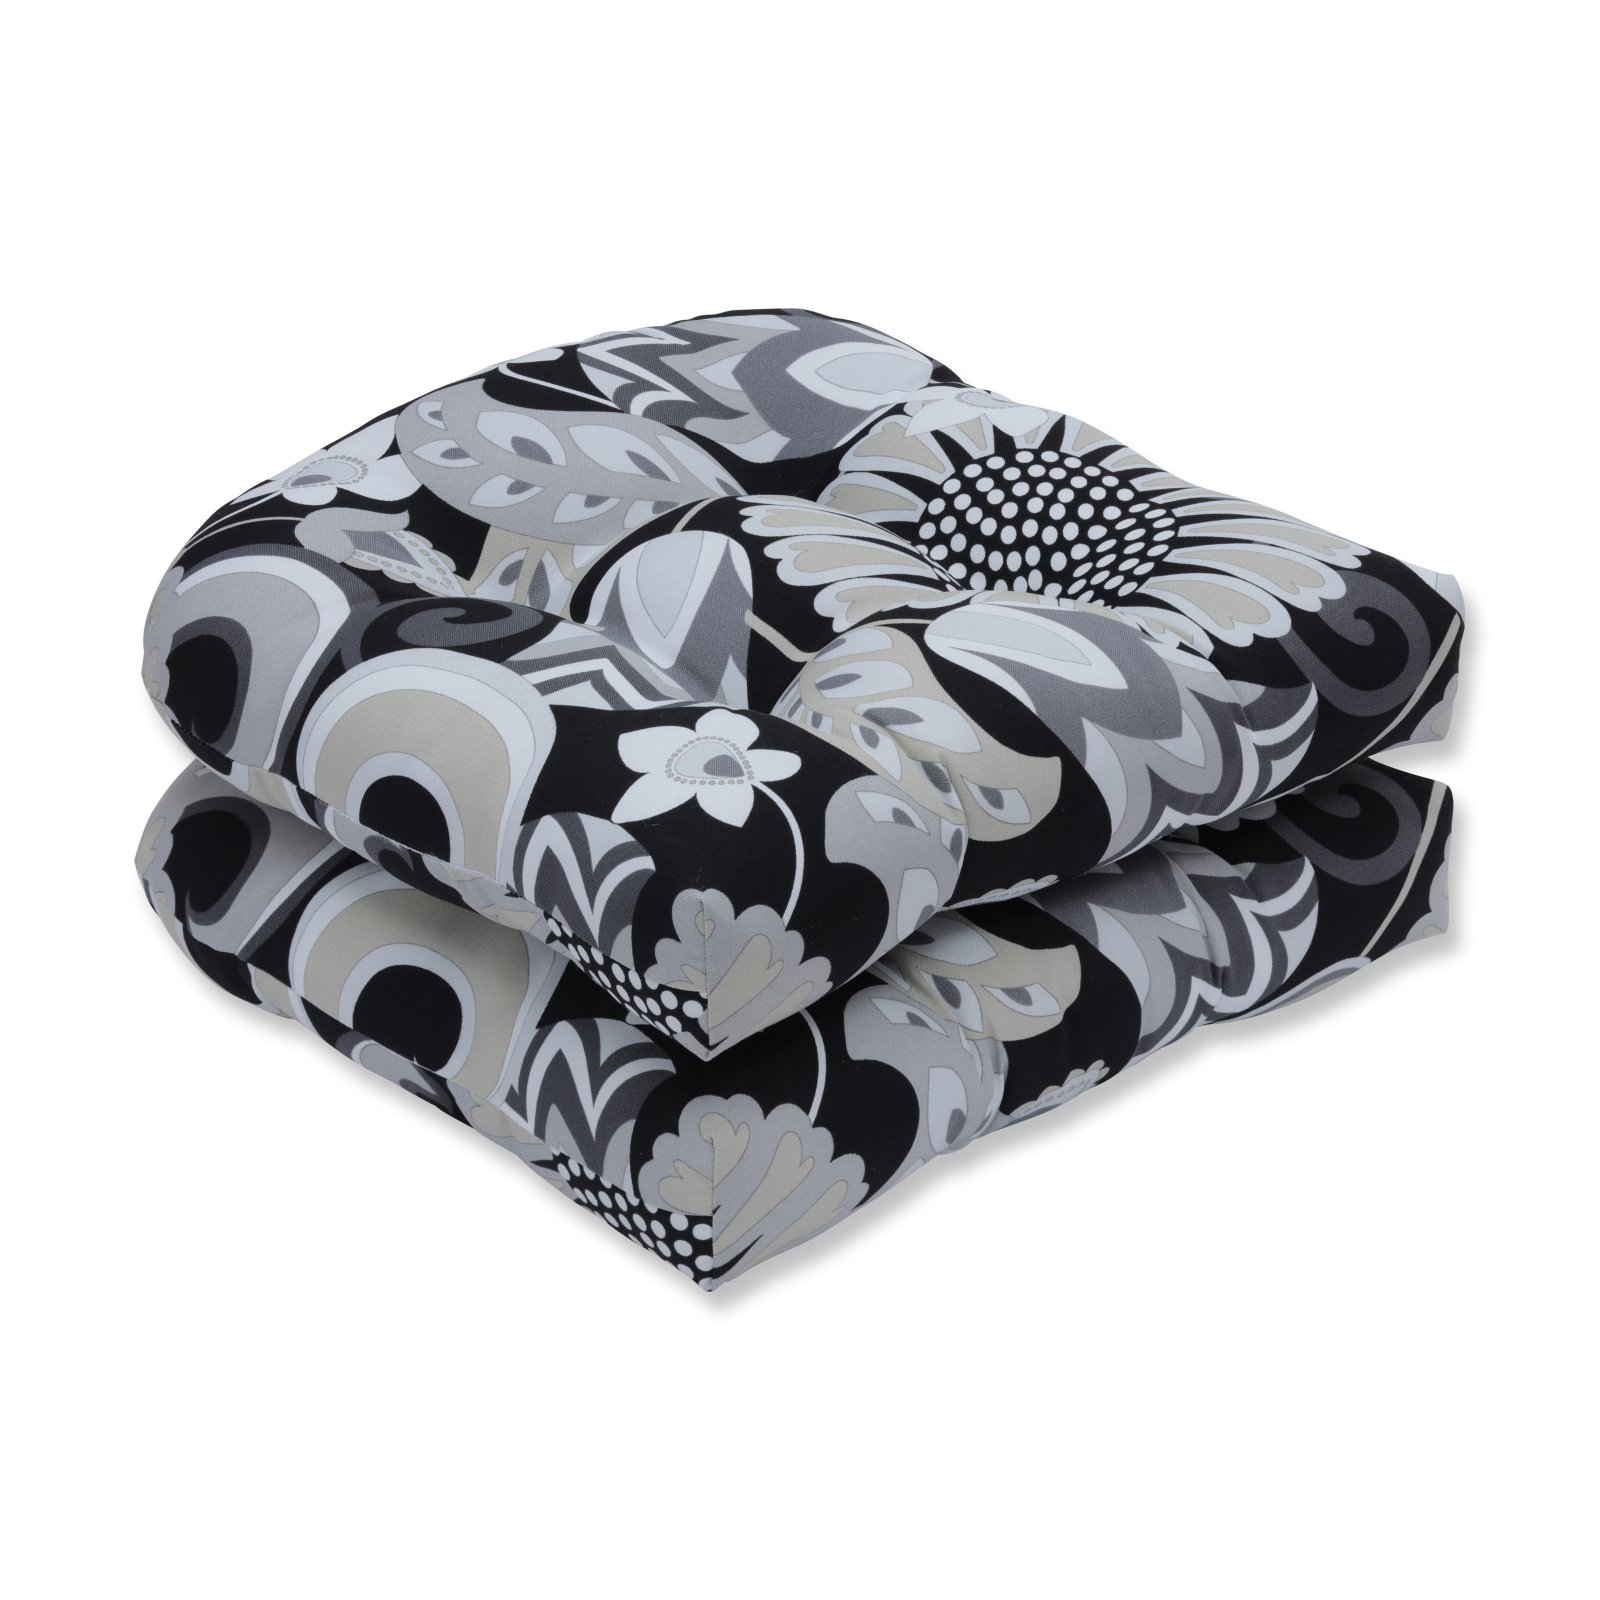 Pillow Perfect Outdoor/Indoor Sophia Graphite Wicker Seat Cushion, Set of 2